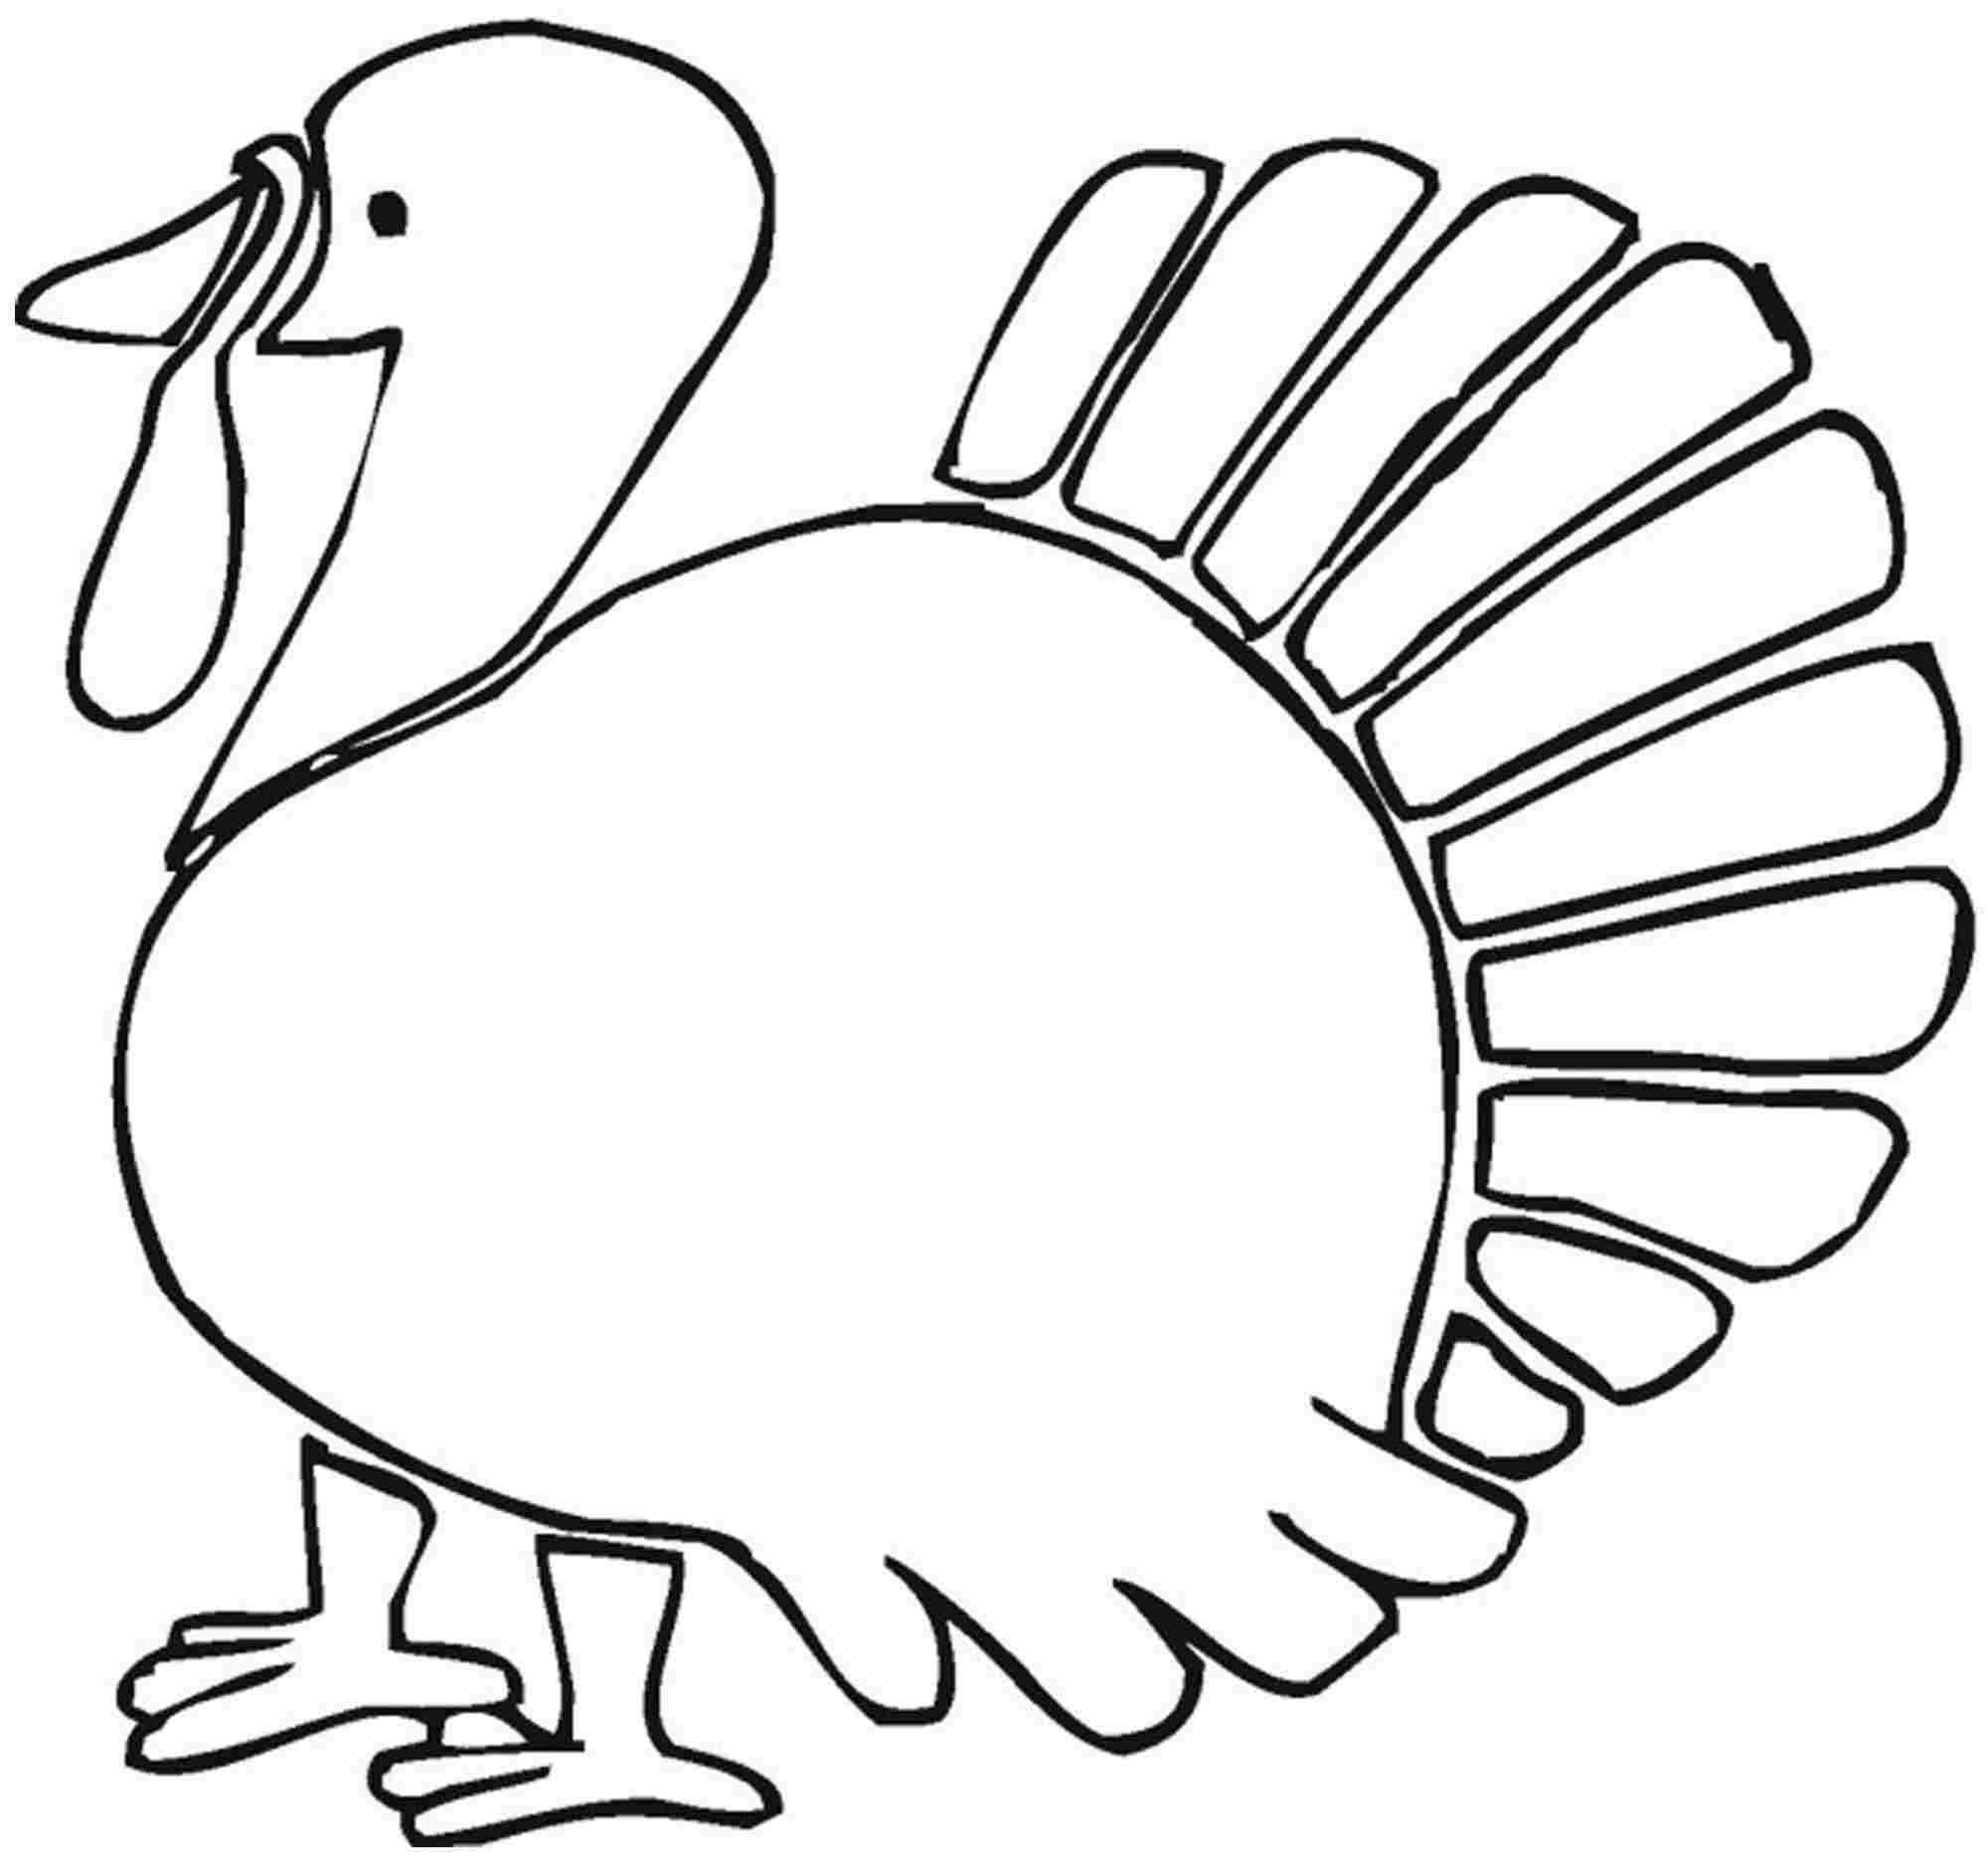 Turkey Coloring Pages Printable For Preschool - Coloring Home